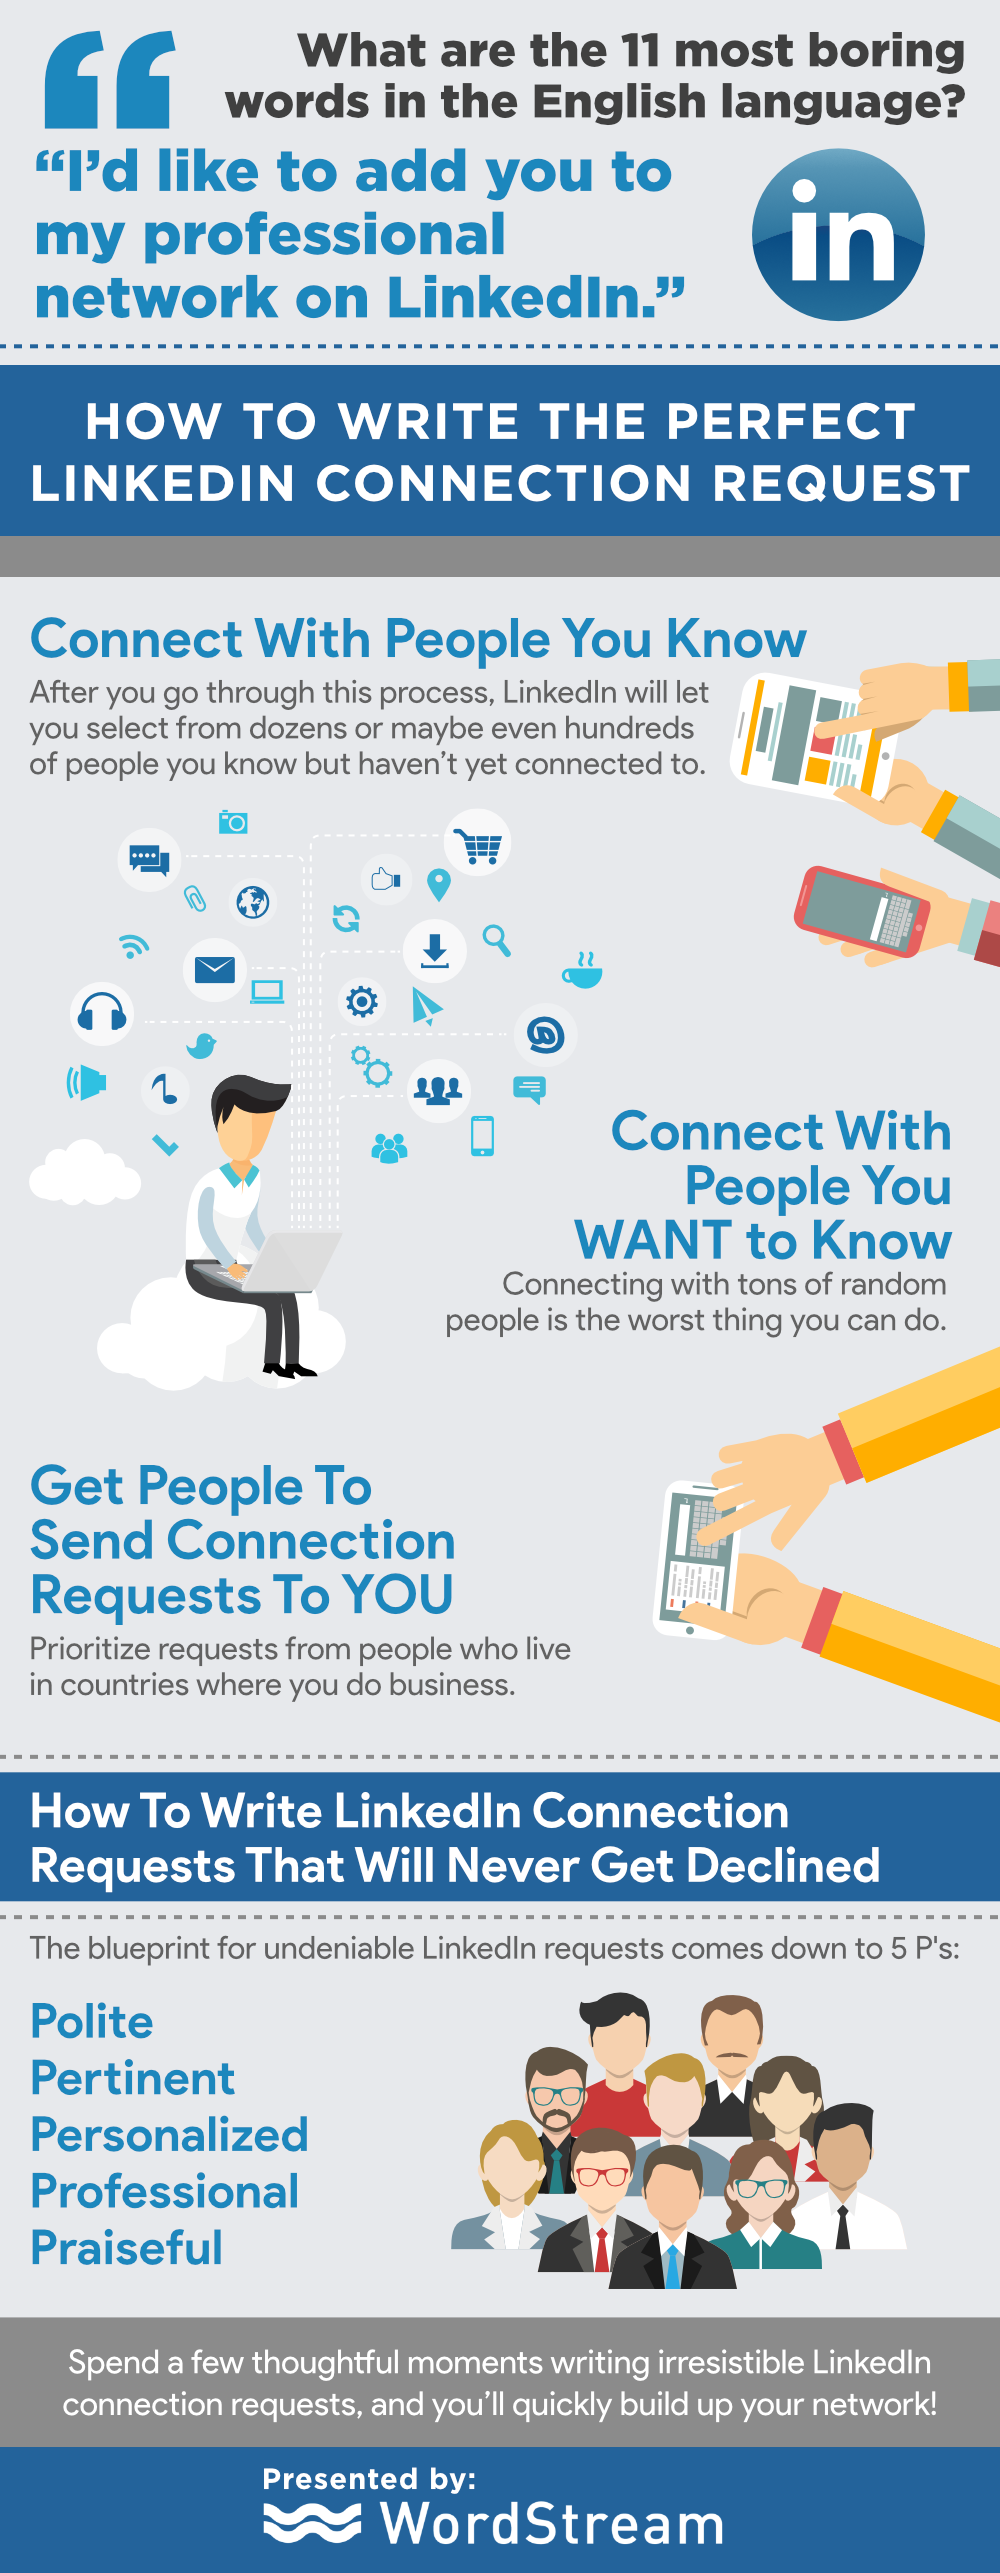 How to write the perfect linkedin connection request wordstream linkedin connection request formula m4hsunfo